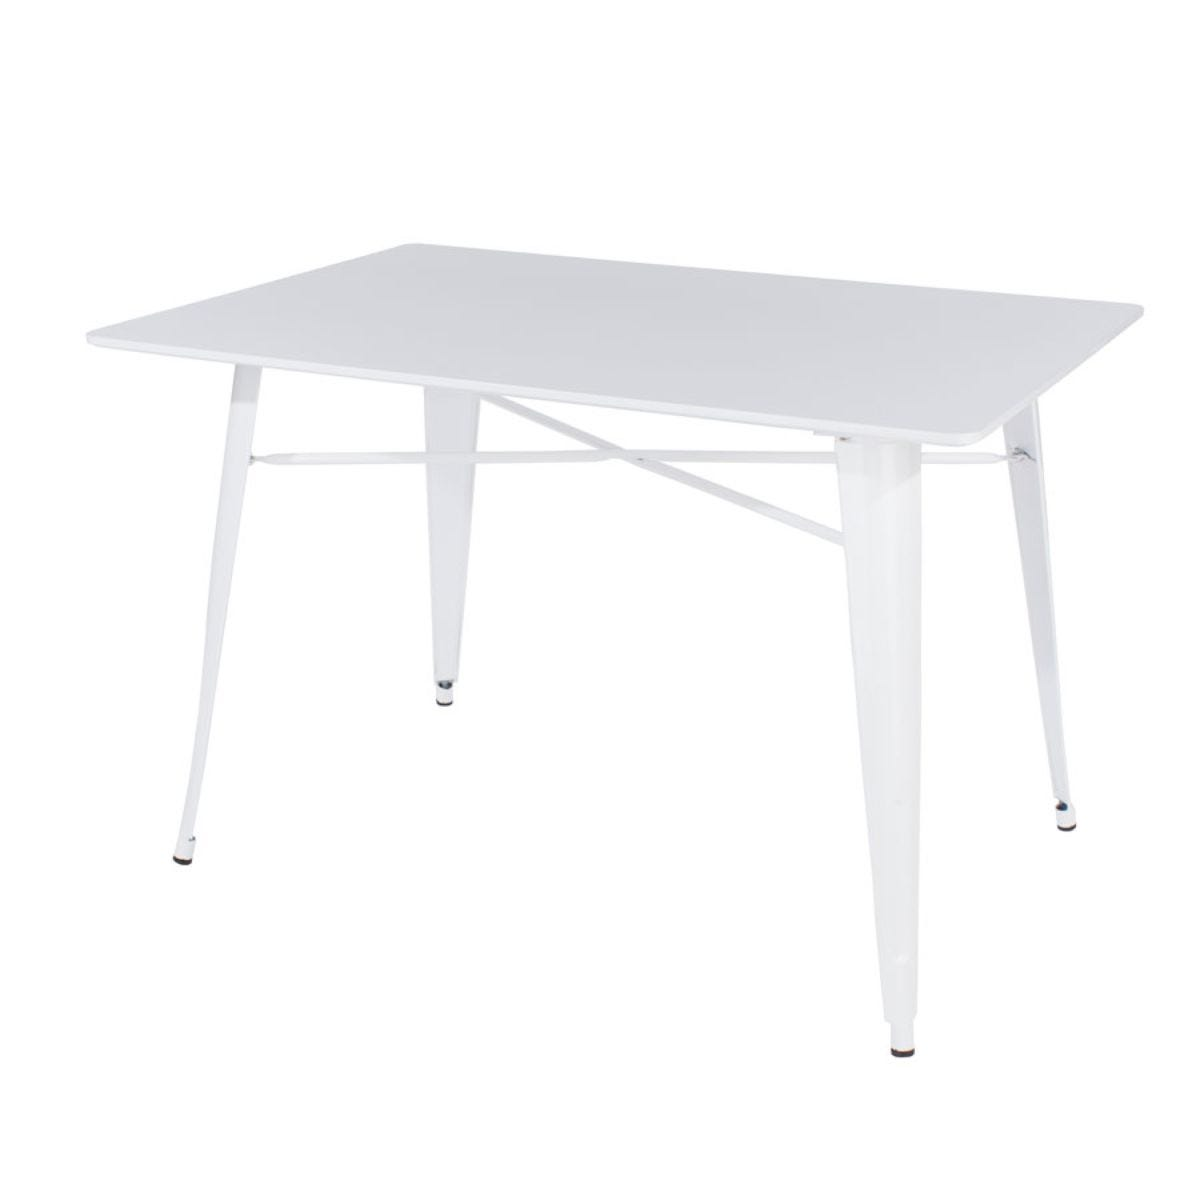 Roloku Large Rectangular Plastic Table with Metal Legs - White